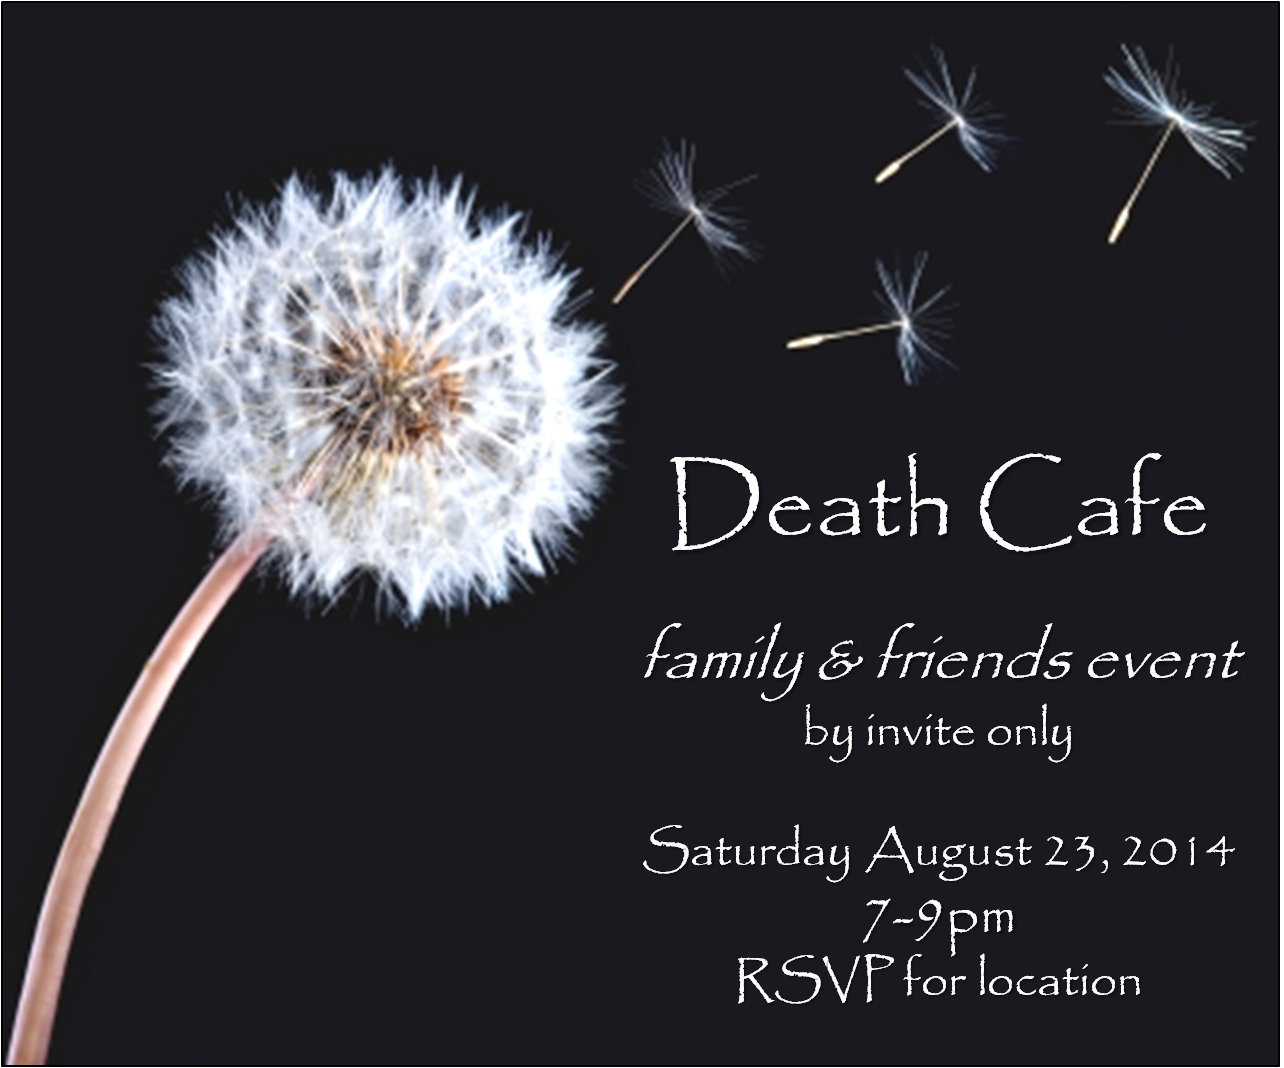 Death Cafe - family & friends event